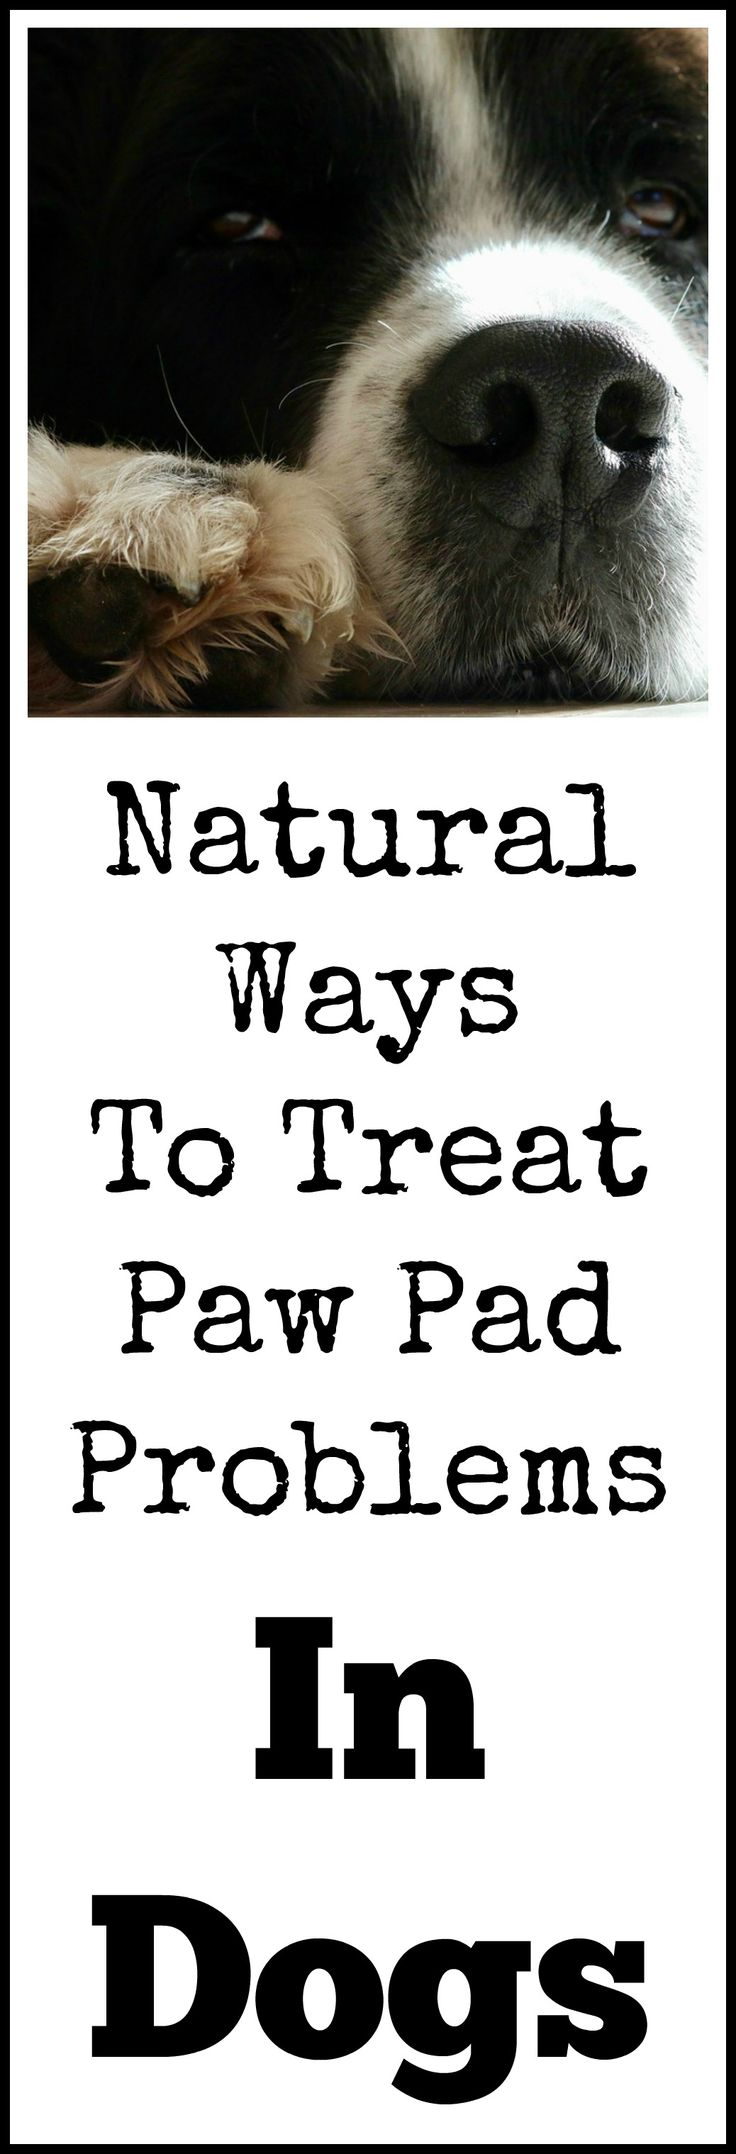 Natural remedies for dog paw pad problems.